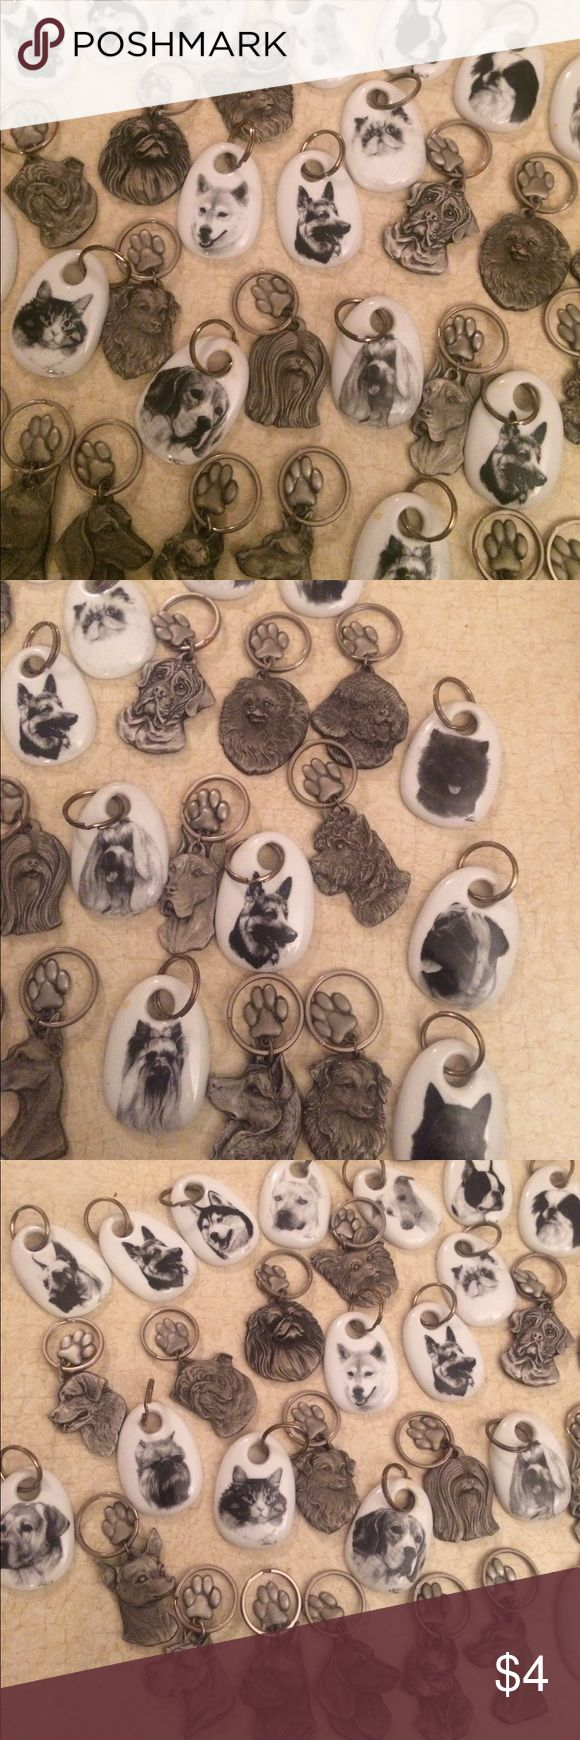 Dog & Cat Key-Chains!!! Add a dog or cat key chain for $4 each to any bundle!!! I have soooo many different kinds. Chihuahua- Pit Bull - Boxer - Dachshund - Boston Terrier - Doberman Pinscher - Shepherd - Siberian Husky - Lhasa Apso - Newfoundland - Pekingese - Papillon - Poodle - Mastiff - Pomeranian - Bichon Frise - Cairn Terrier - Great Dane - German Sheppard - Greyhound Persian Cat - Labrador - Basset Hound  & so many more! Just ask-Comment  & I will make listing & u can bundle w order…